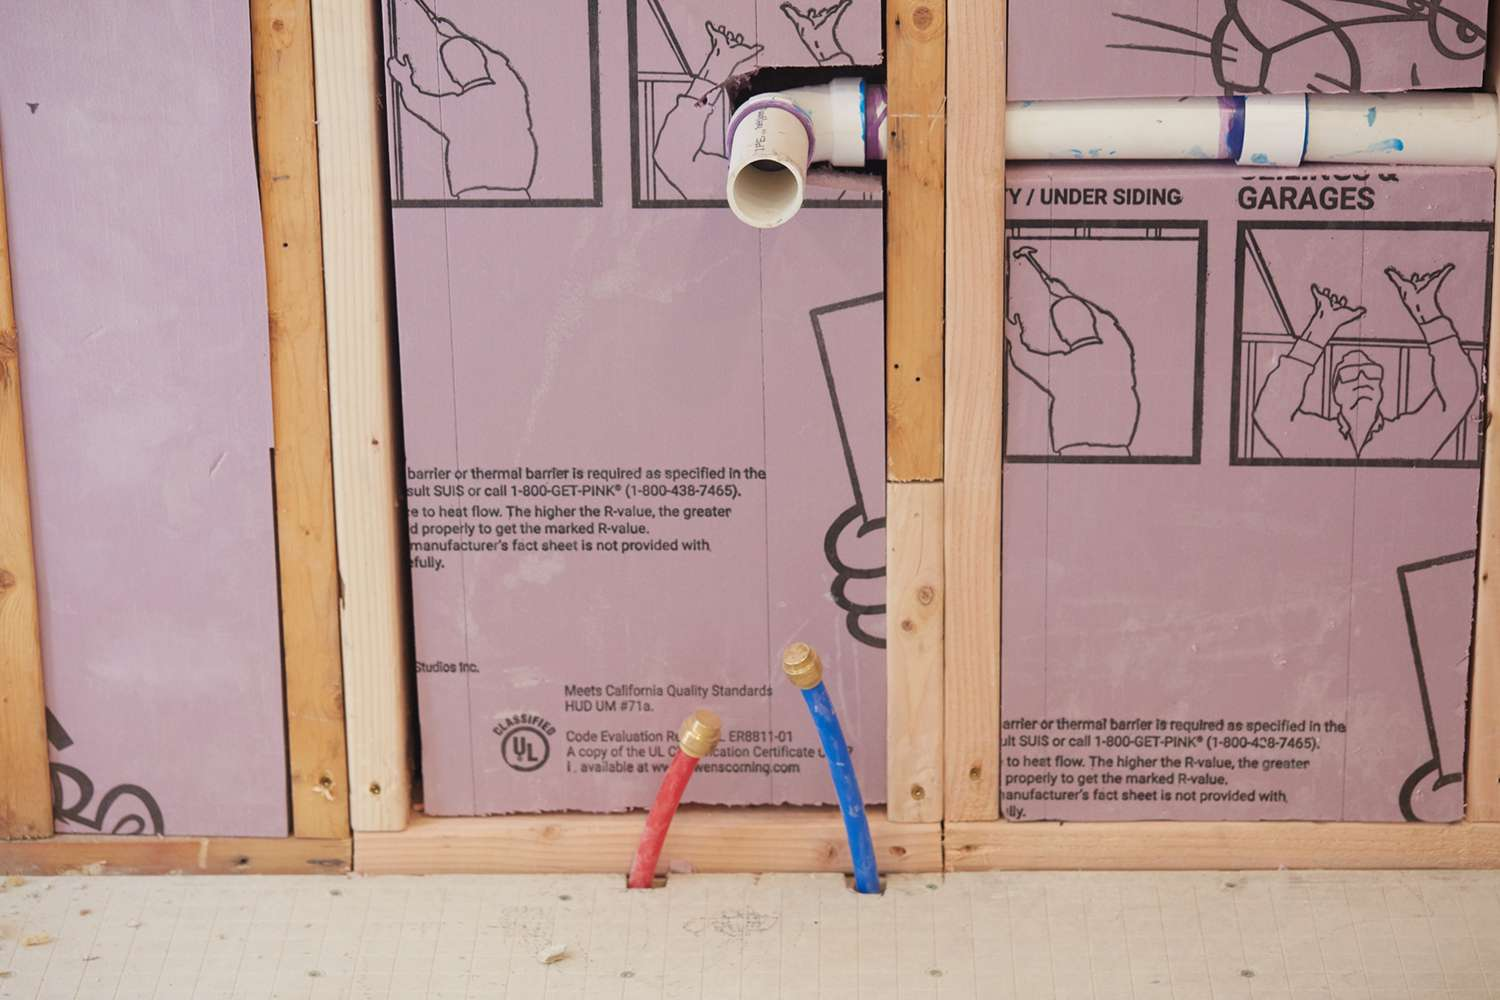 Plumbing tubes and pipes in front of exposed dry wall with insulation